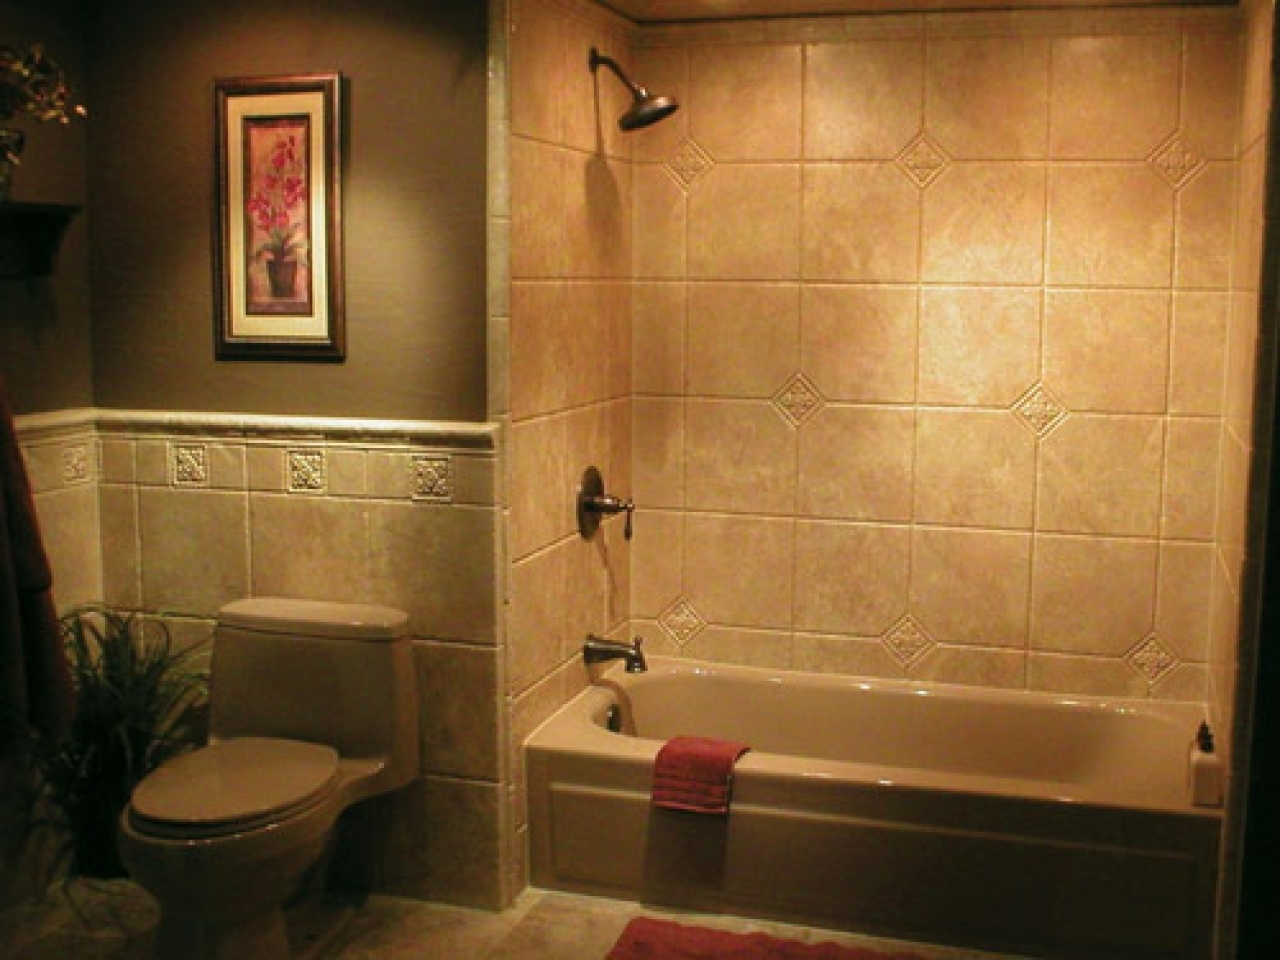 ... _Bathroom_Remodeling_Concept_Ideas_BATHROOM_DESIGNS__amp_IDEAS.jpg